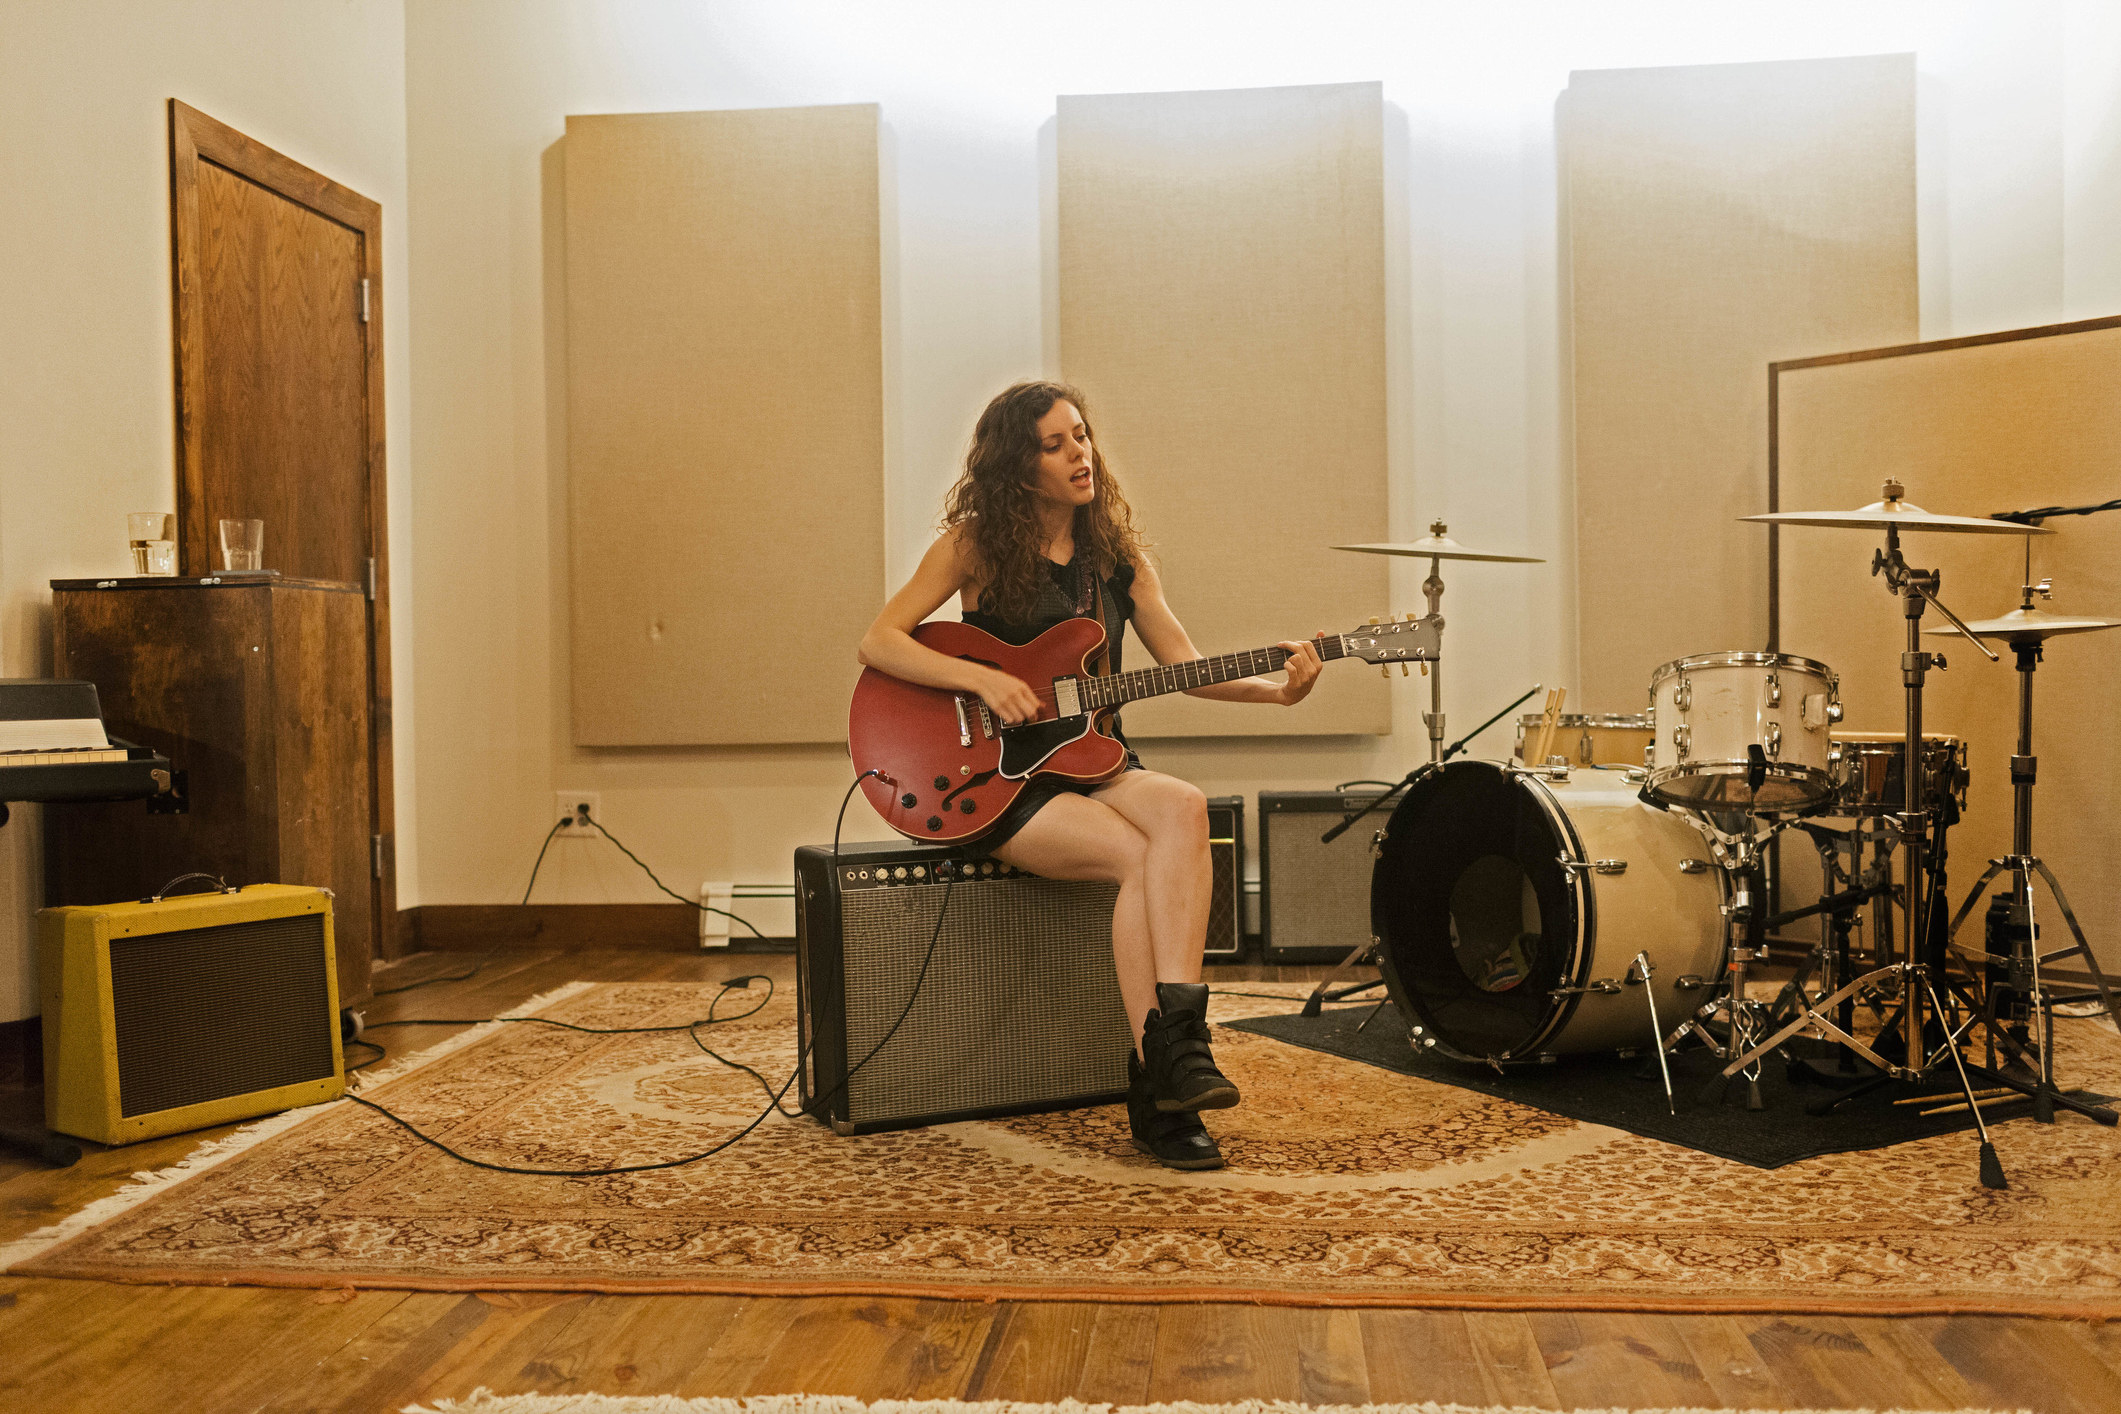 A person playing electric guitar in their studio next to a set of drums